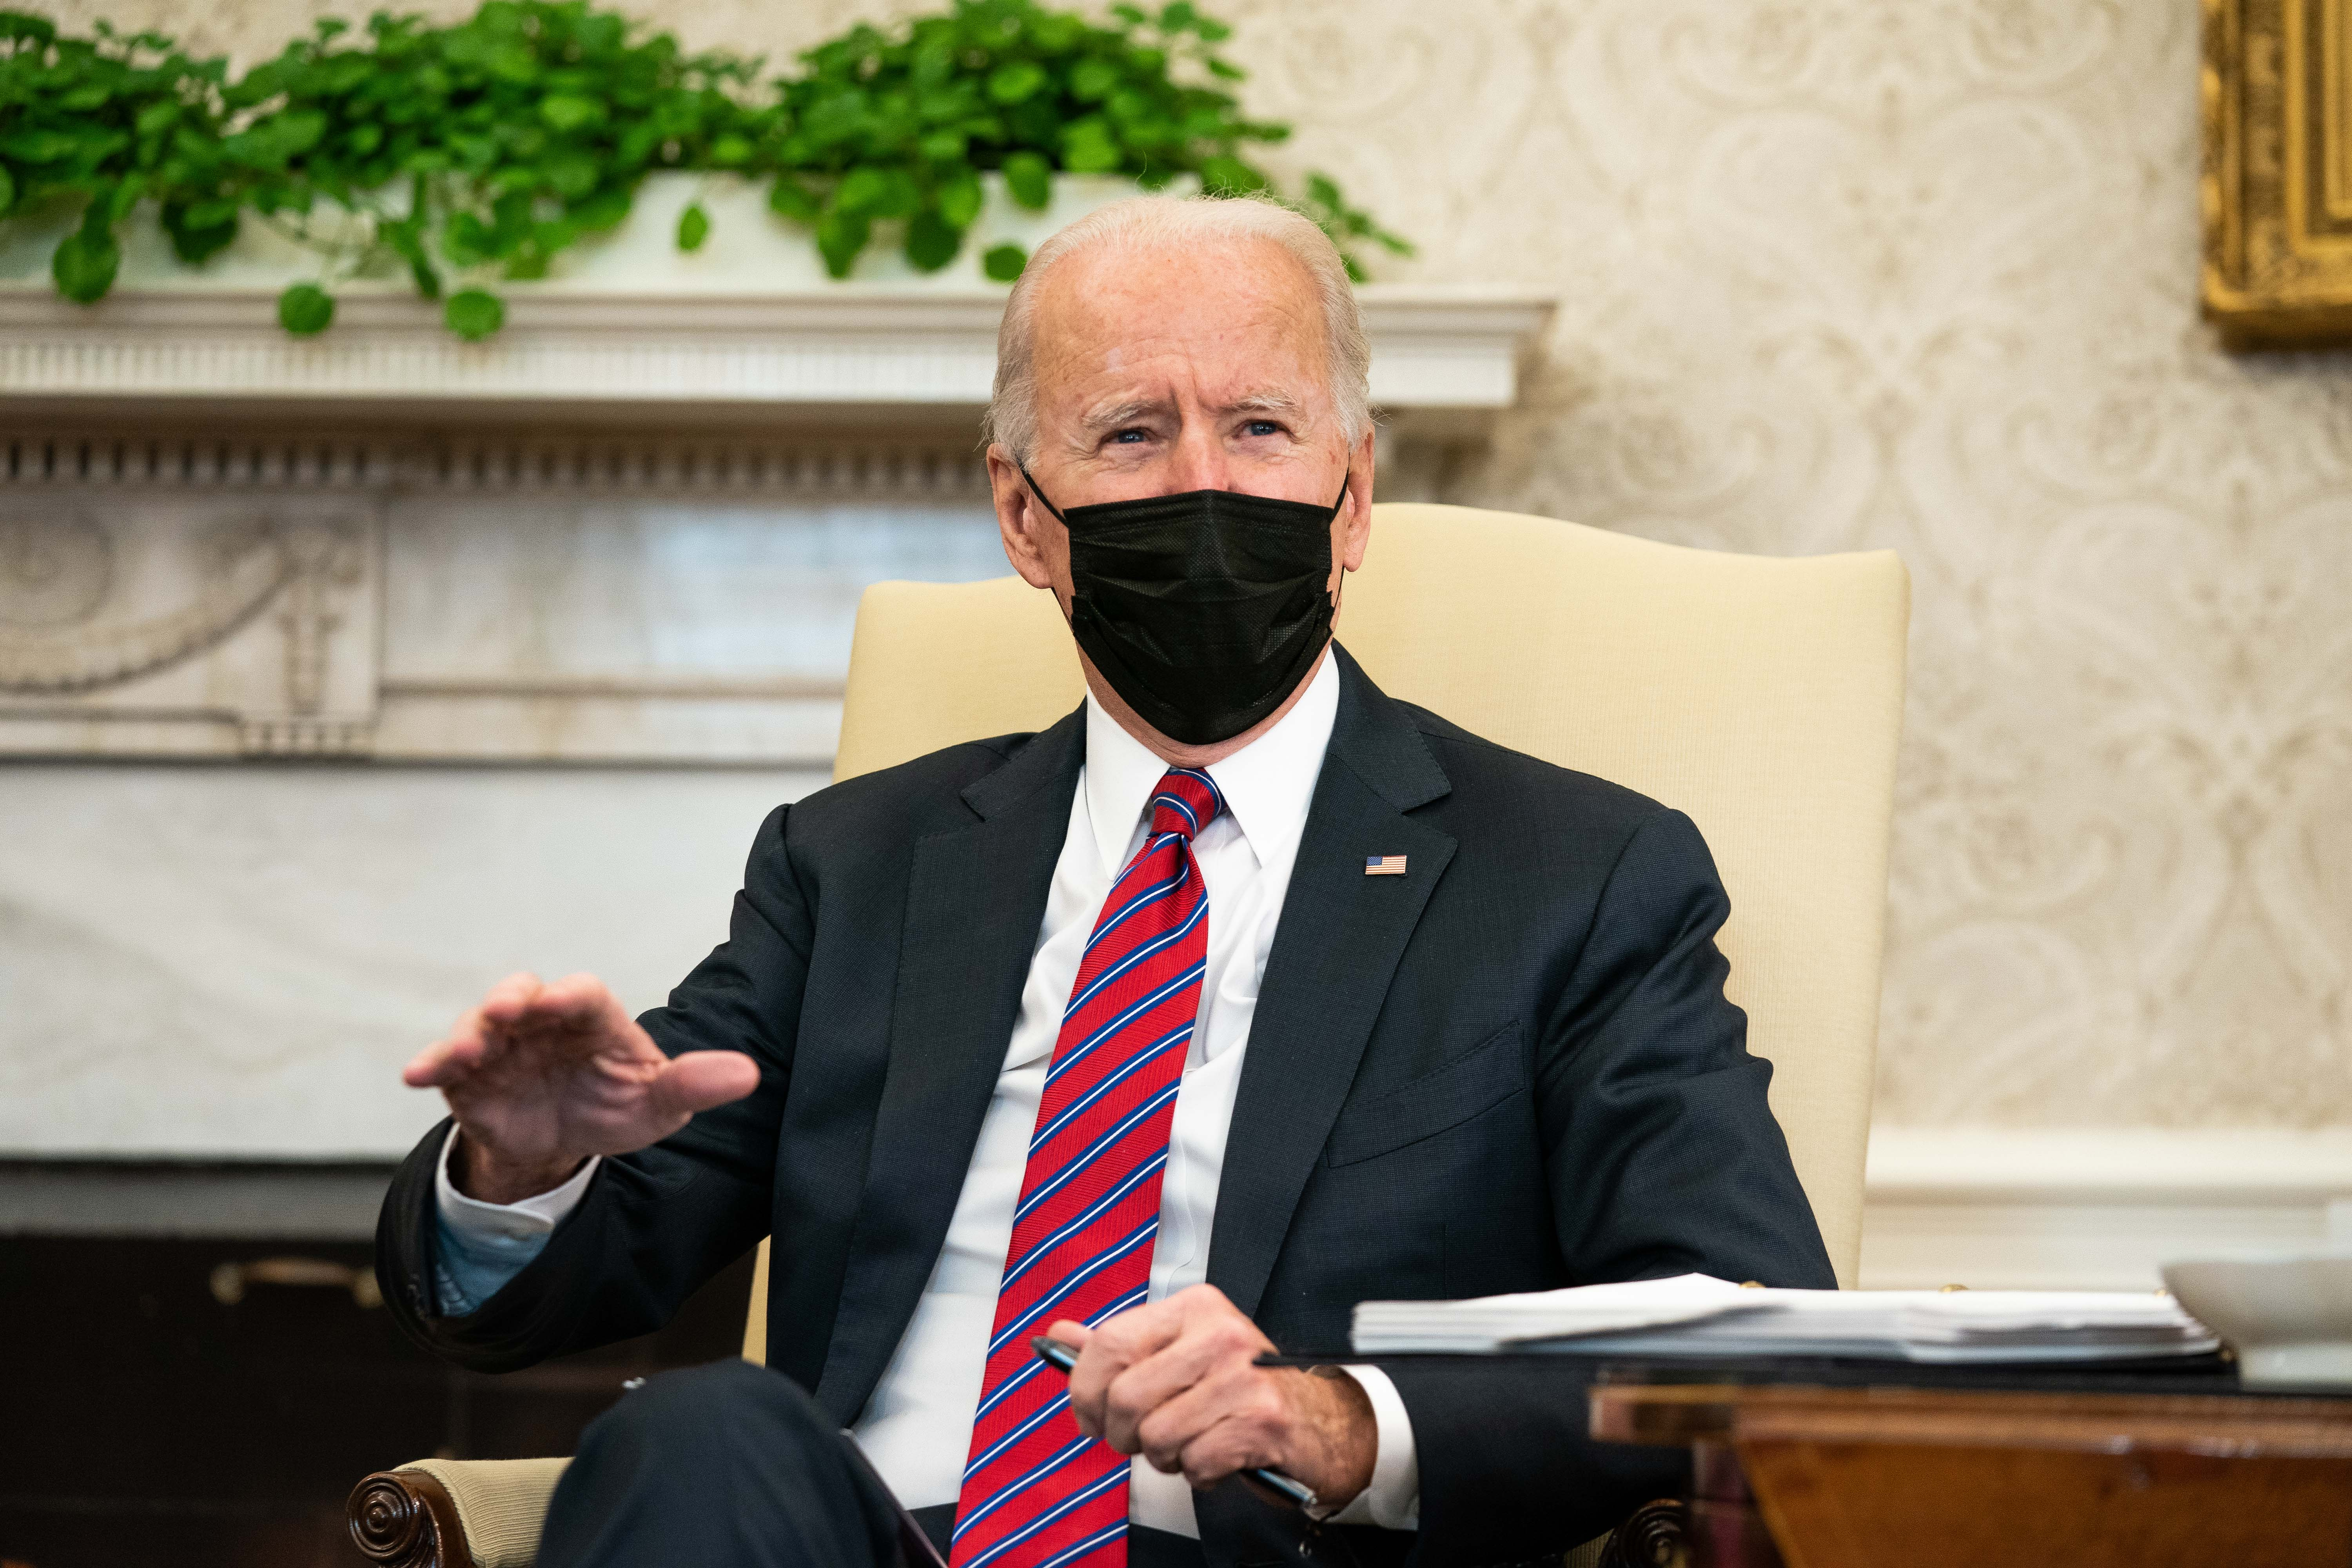 Biden hosts CEOs at the White House to try to build support for COVID-19 relief bill